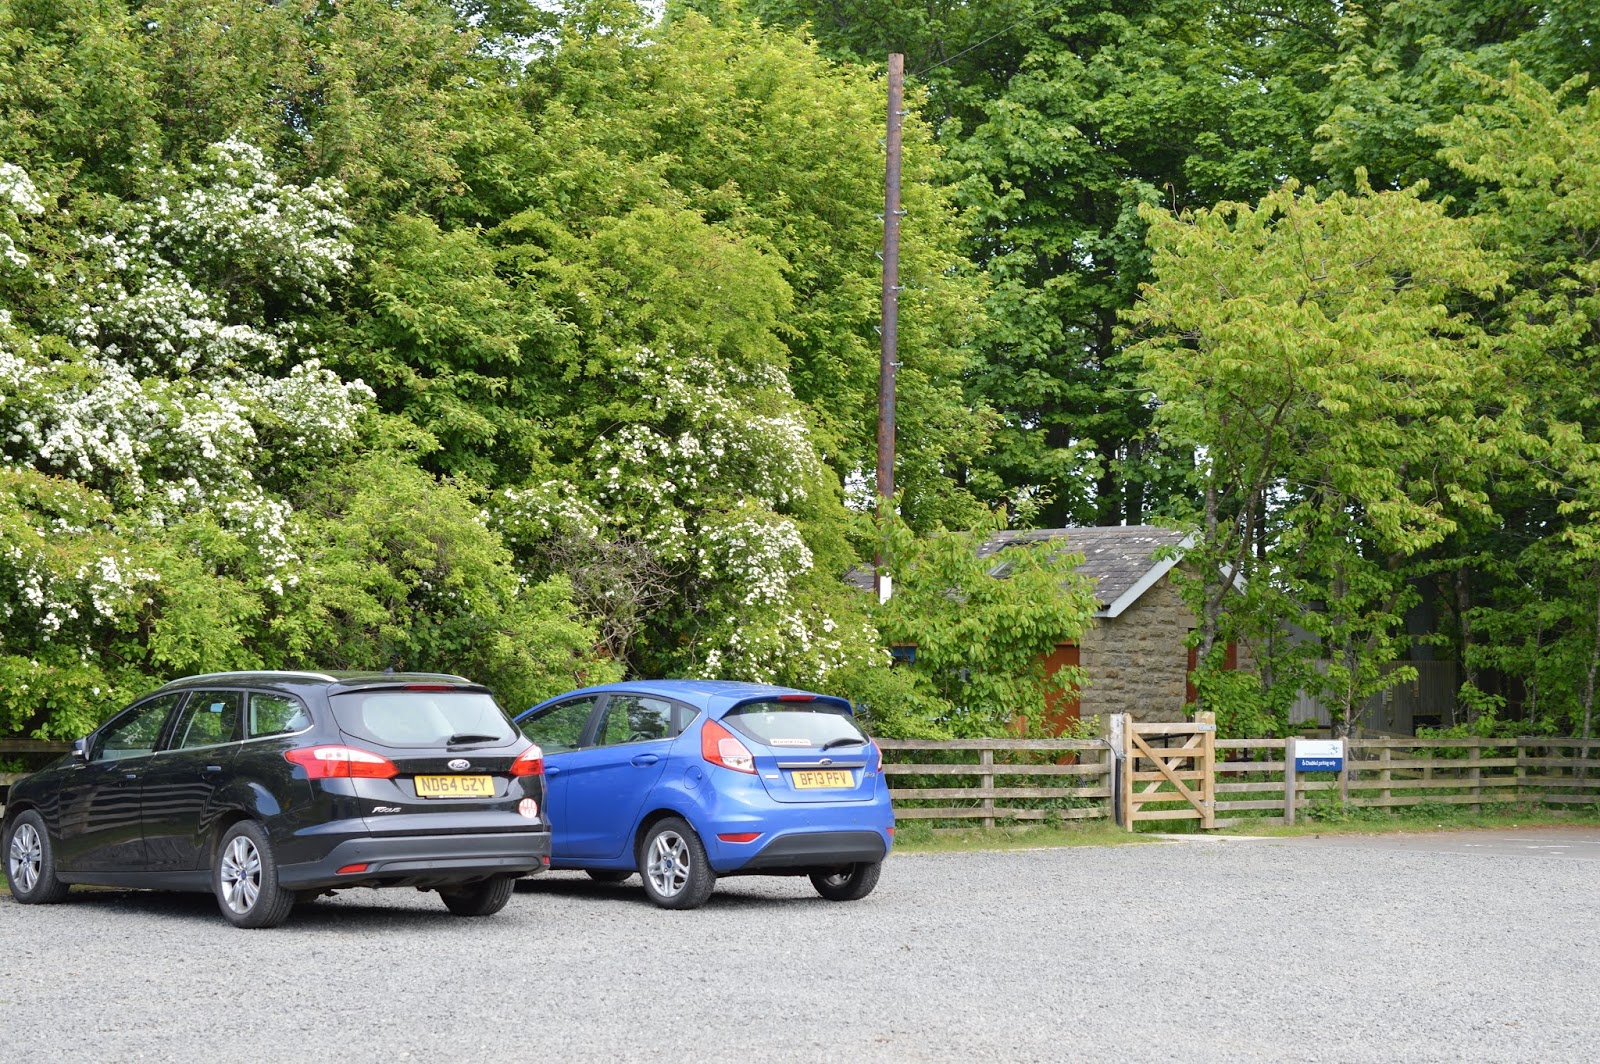 A Family BBQ at Ingram Valley, Northumberland National Park  - car park